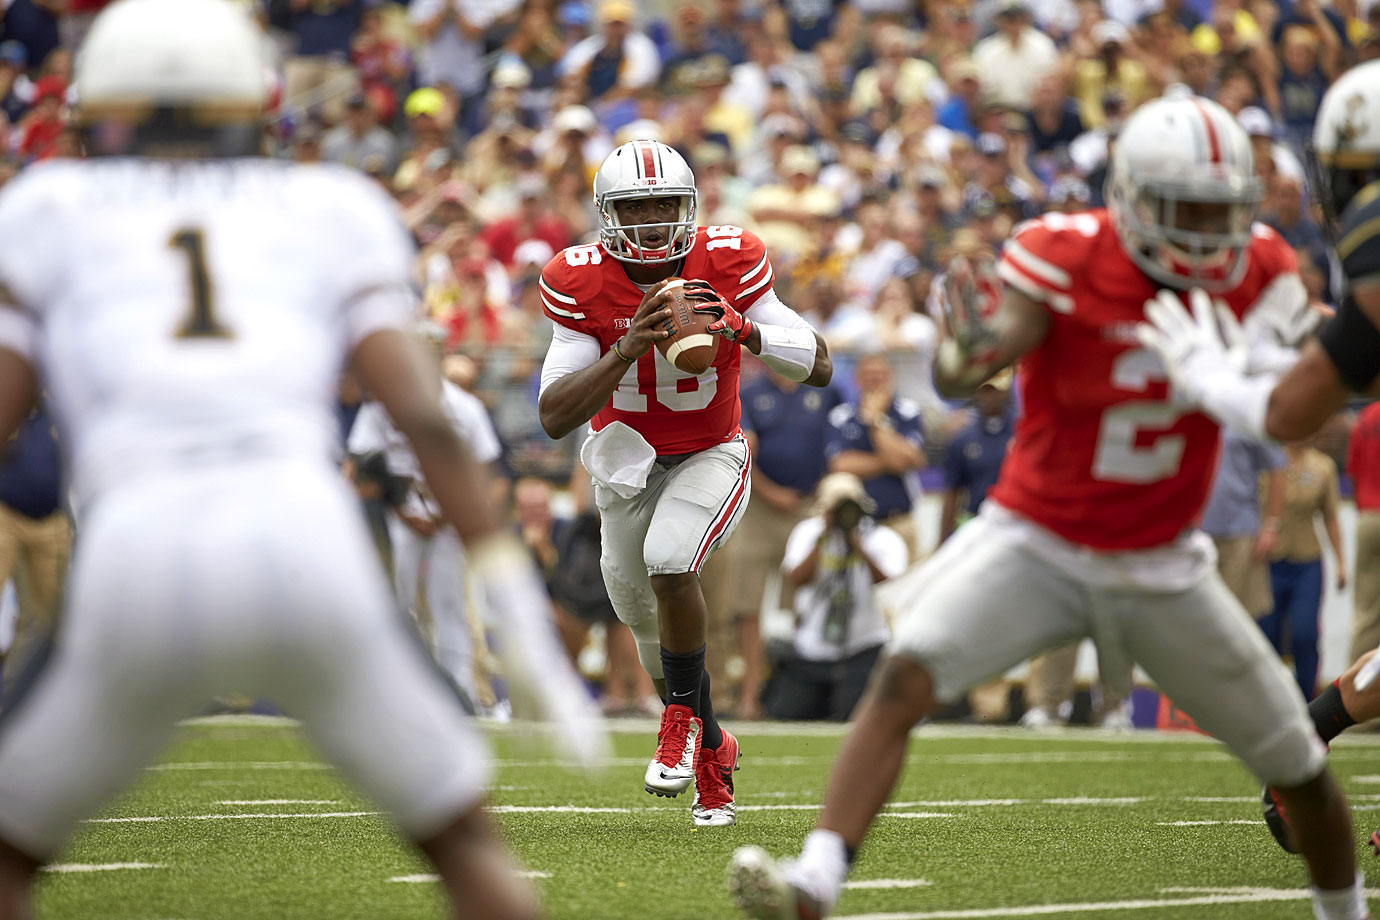 The J.T. Barrett era began with neither a bang nor a whimper, but instead a calm, conservative victory. The redshirt freshman completed 12-of-15 passes for 226 yards with two touchdowns and a blunder of an interception.